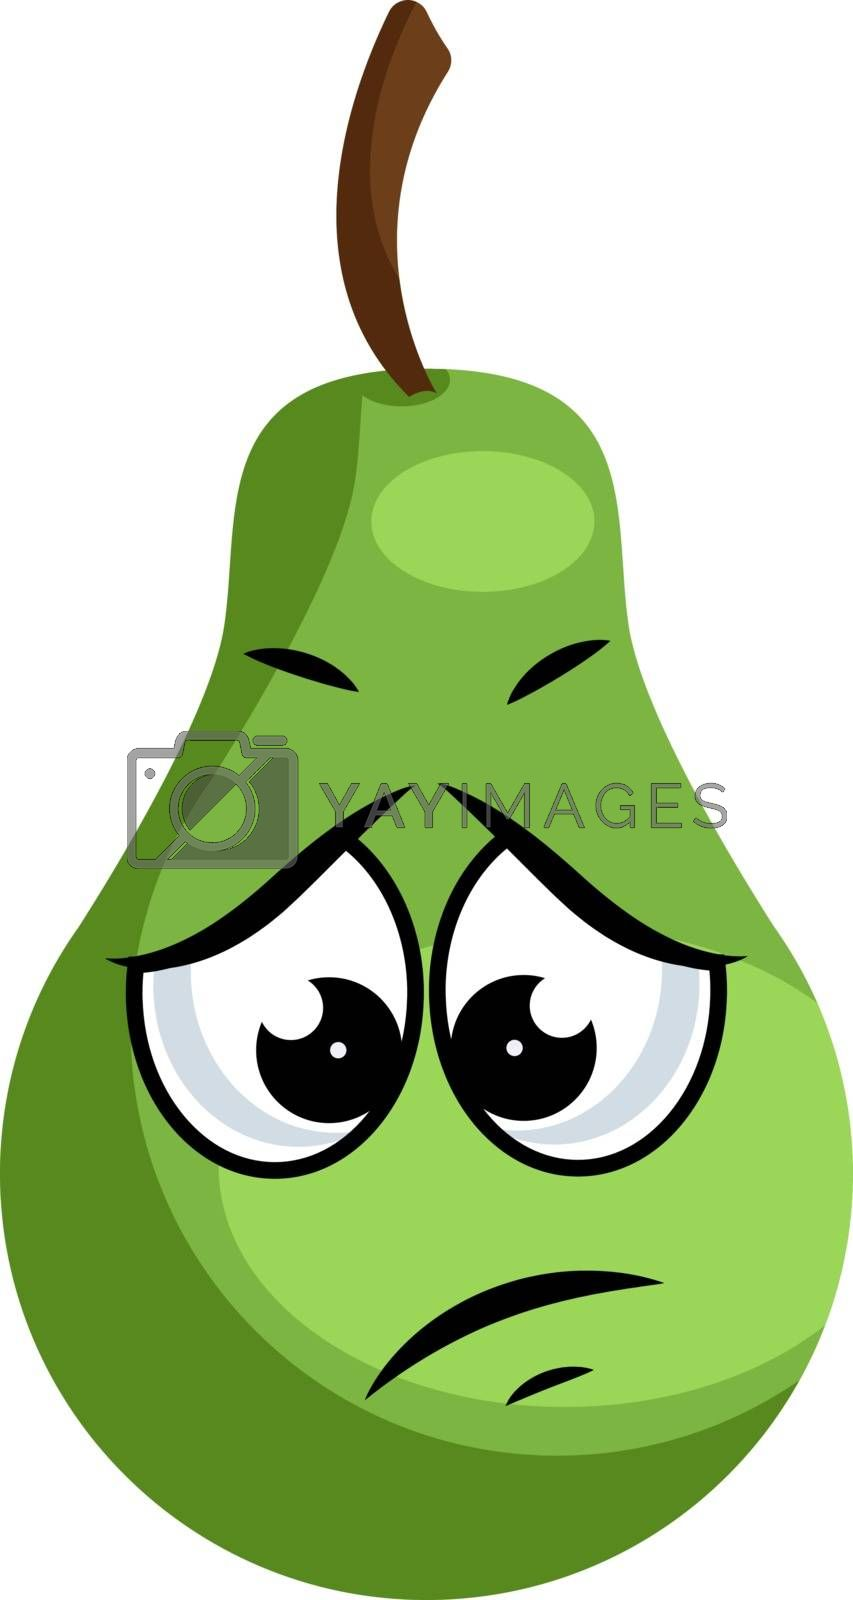 Royalty free image of Sad green pear illustration vector on white background by Morphart